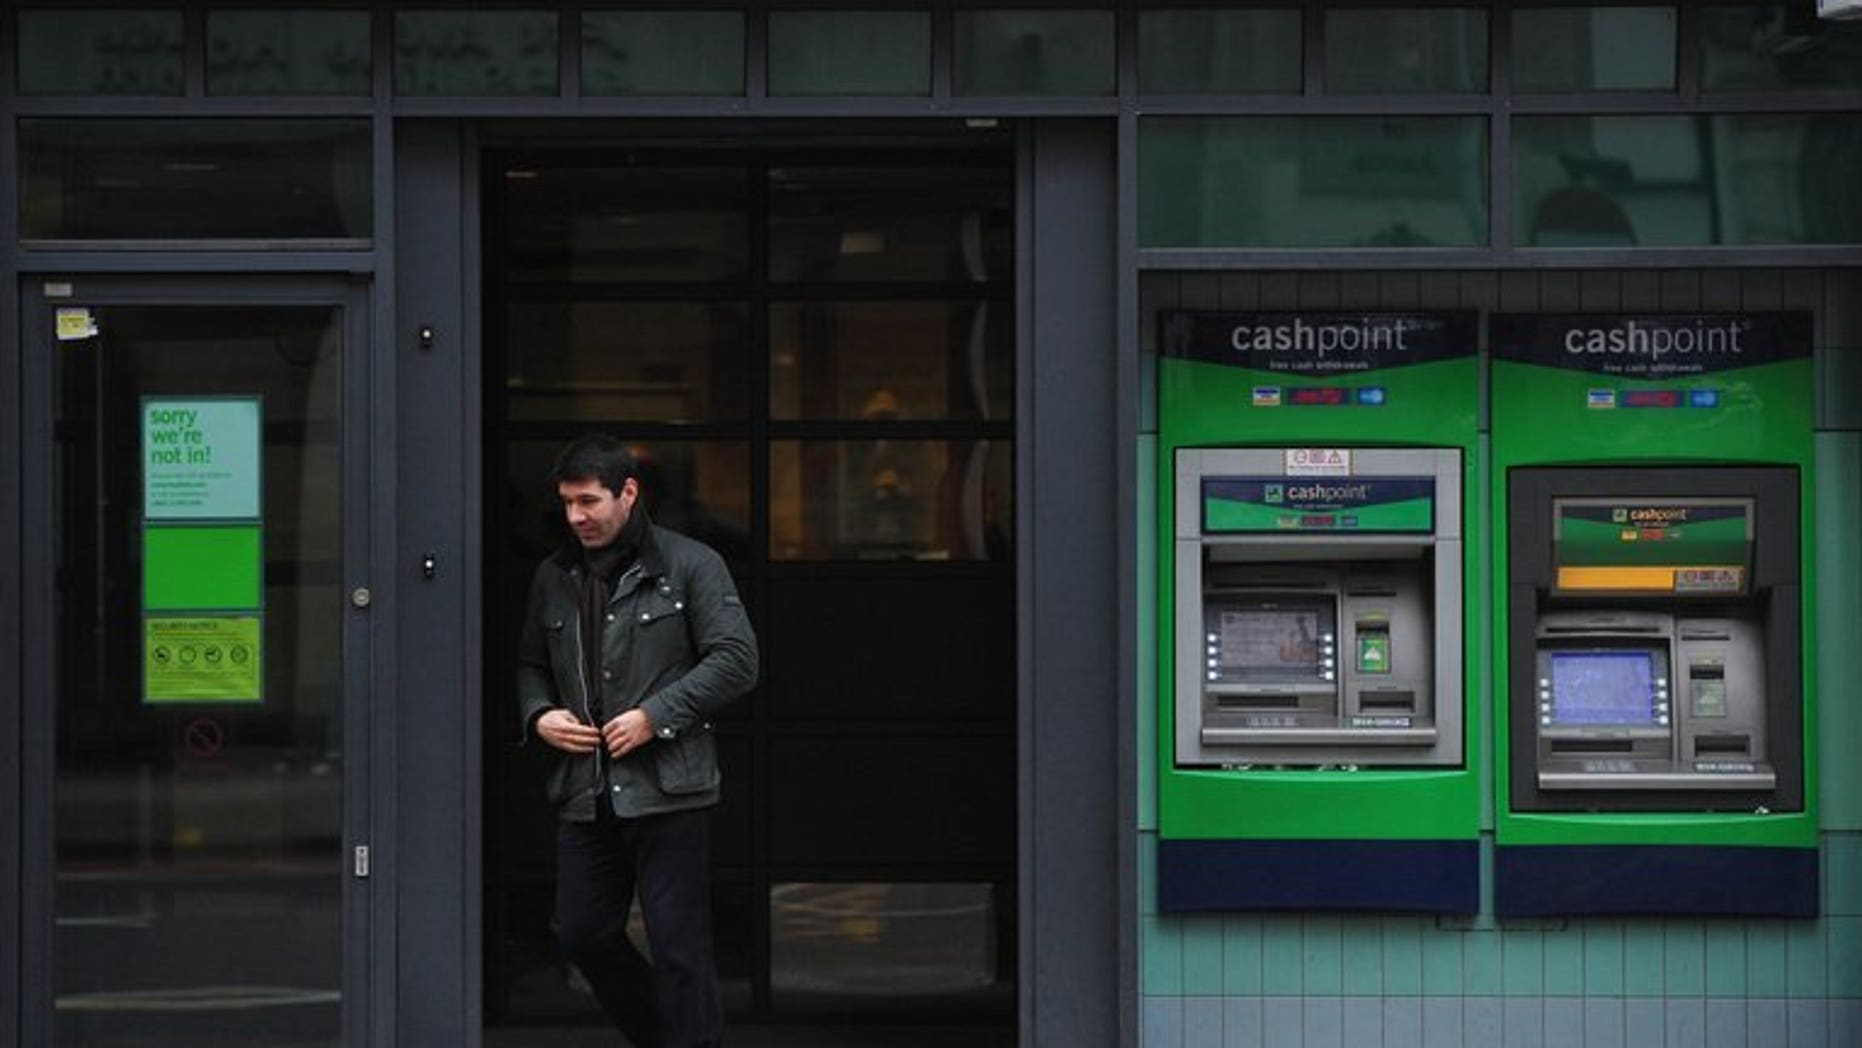 A man leaves a branch of Lloyds TSB bank in central London on March 1. Britain's state-rescued Lloyds Banking Group on Thursday announced a return to first-half net profits as the government looks to return the lender to the private sector.